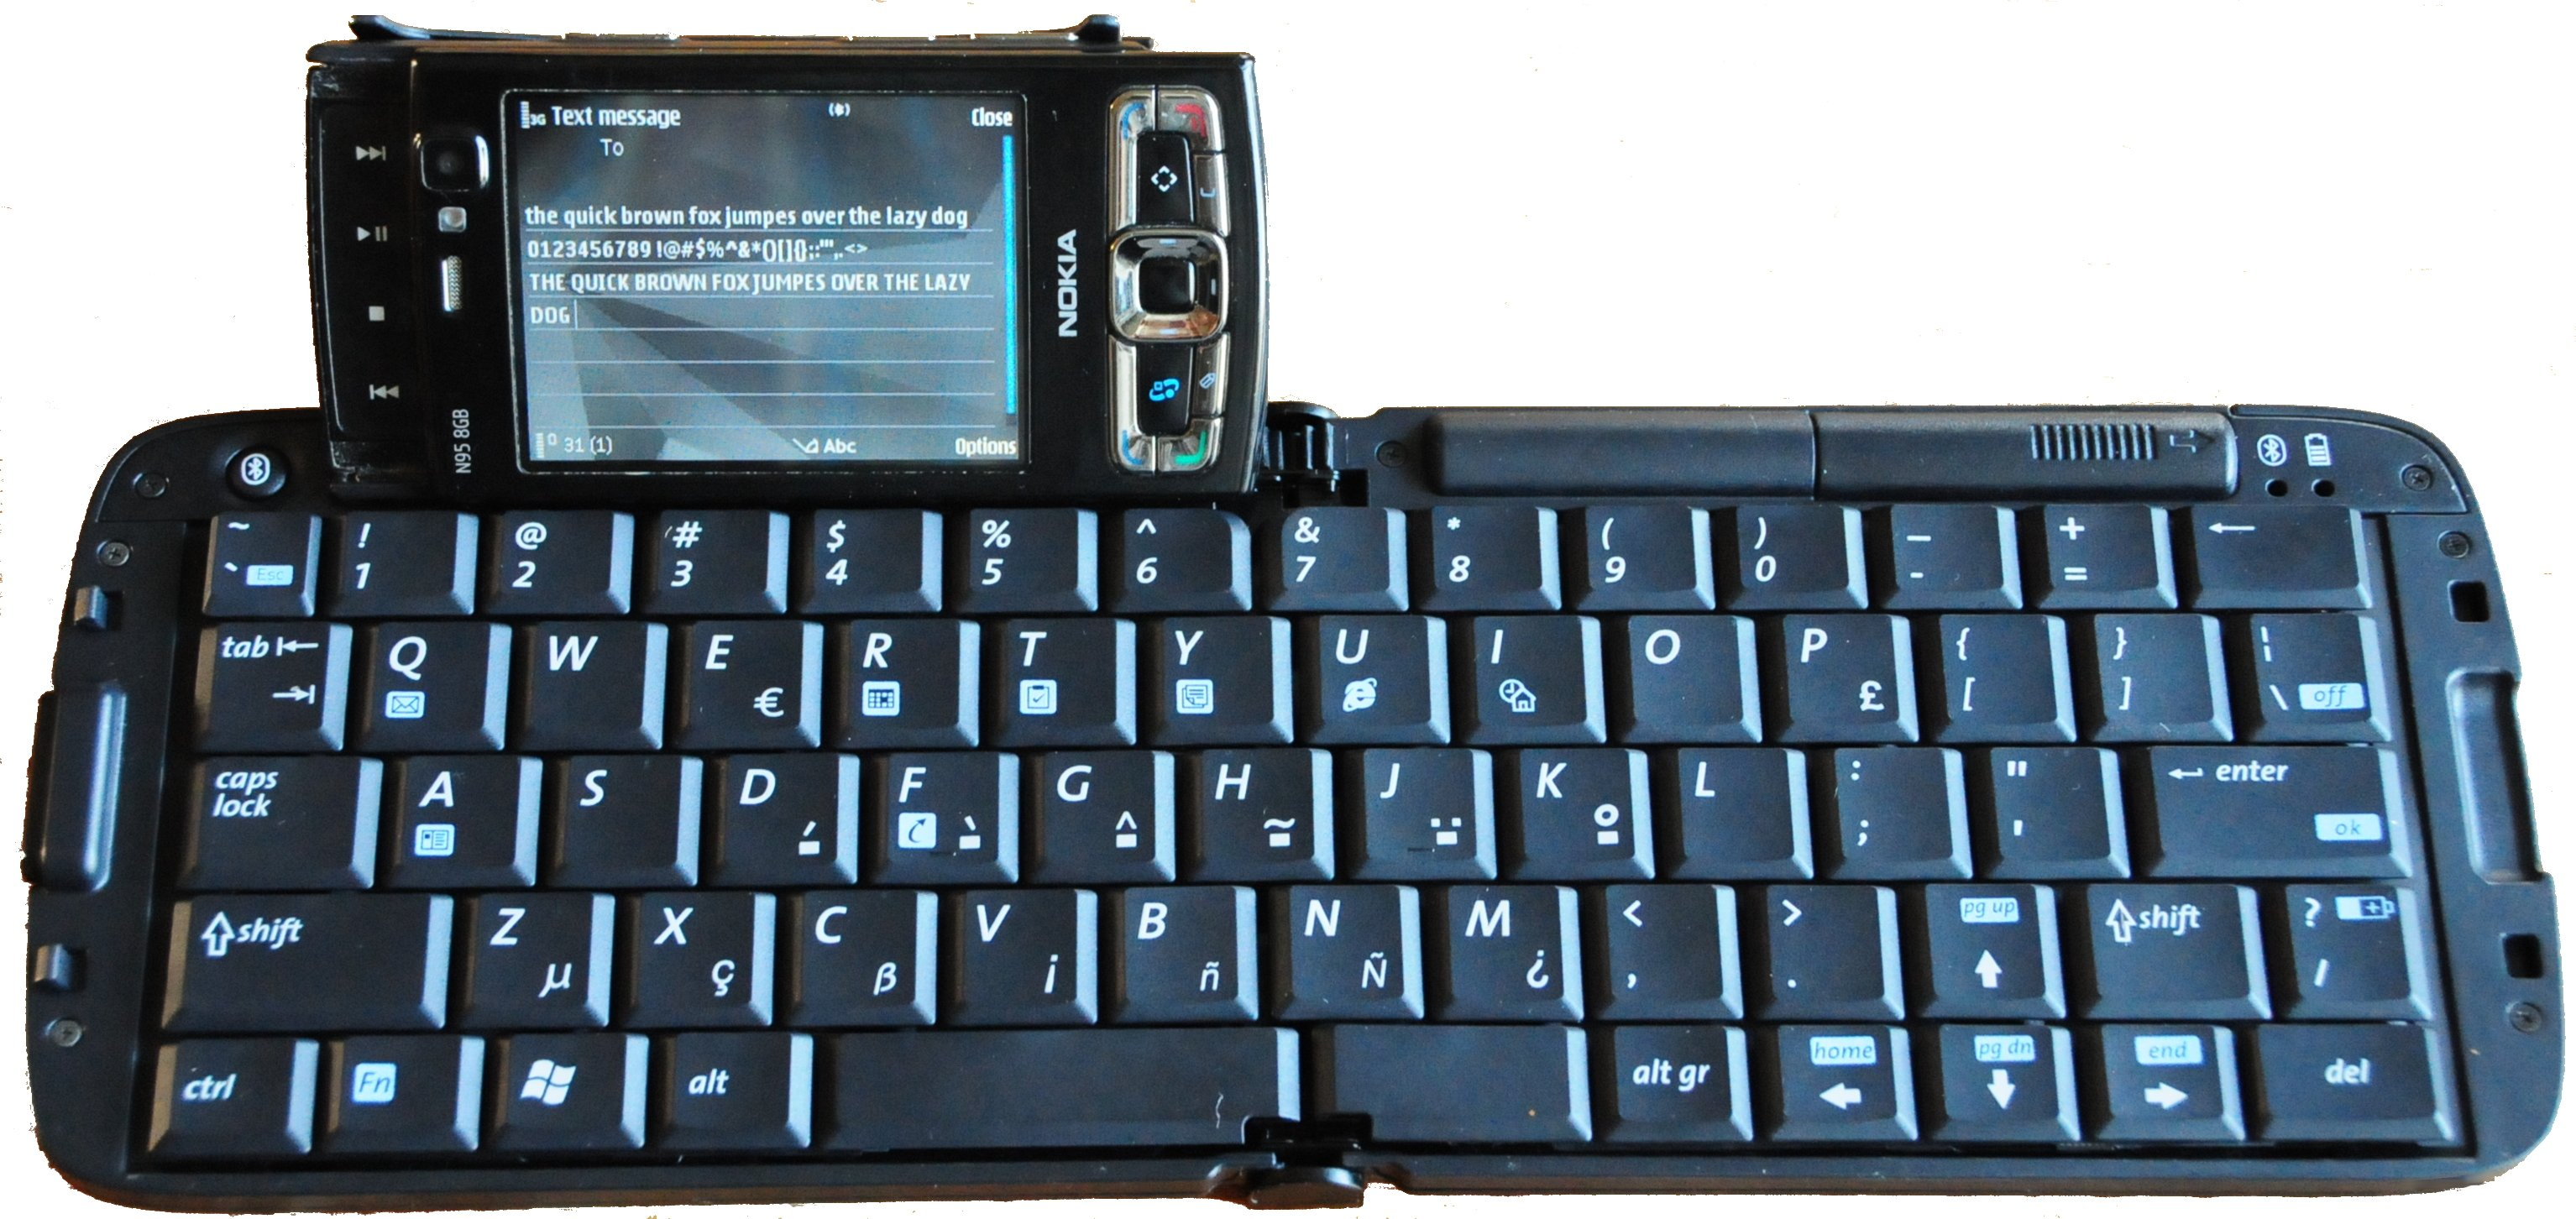 how to connect a phone to protab bluetooth keyboard